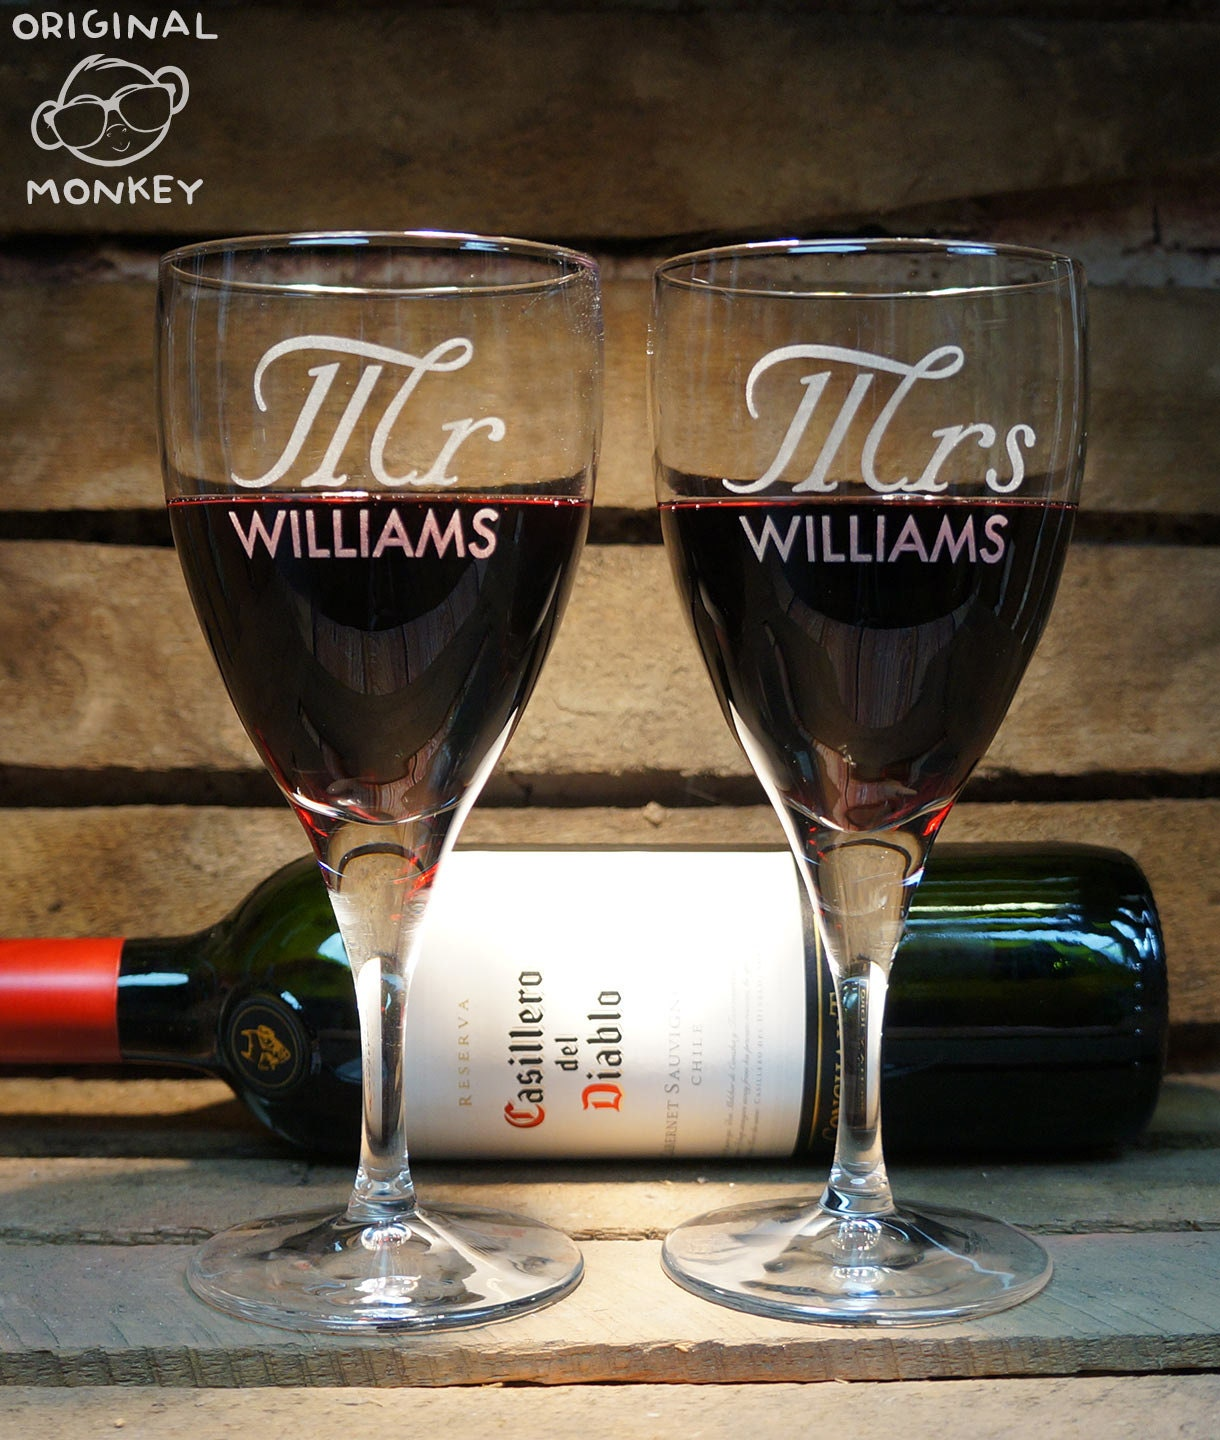 Wedding Gift Wine Glasses : Mr & Mrs Wine Glasses Wedding Gifts Christmas gift New home